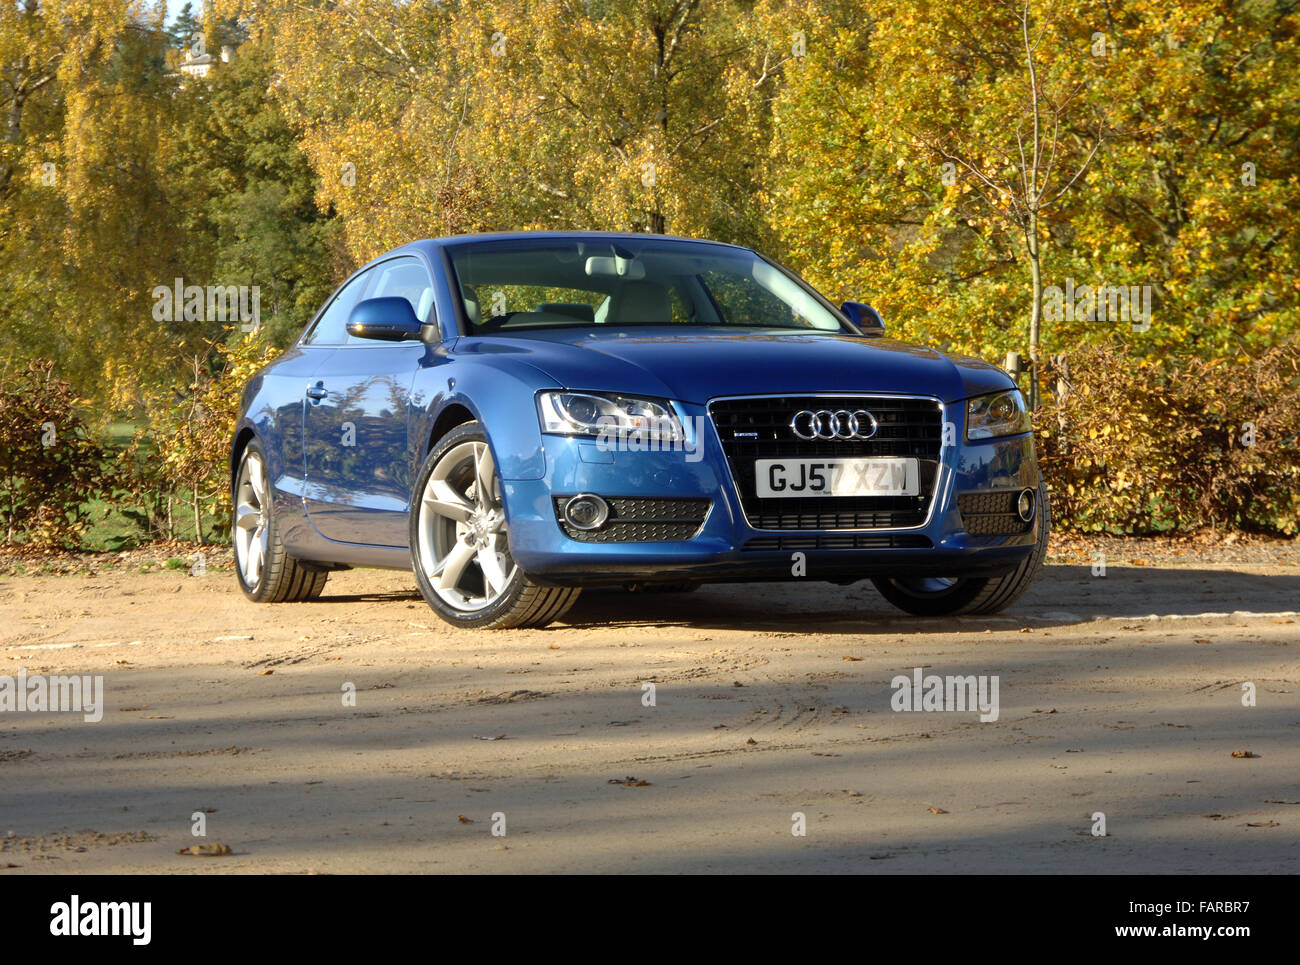 2007 Audi A5 luxury coupe - Stock Image